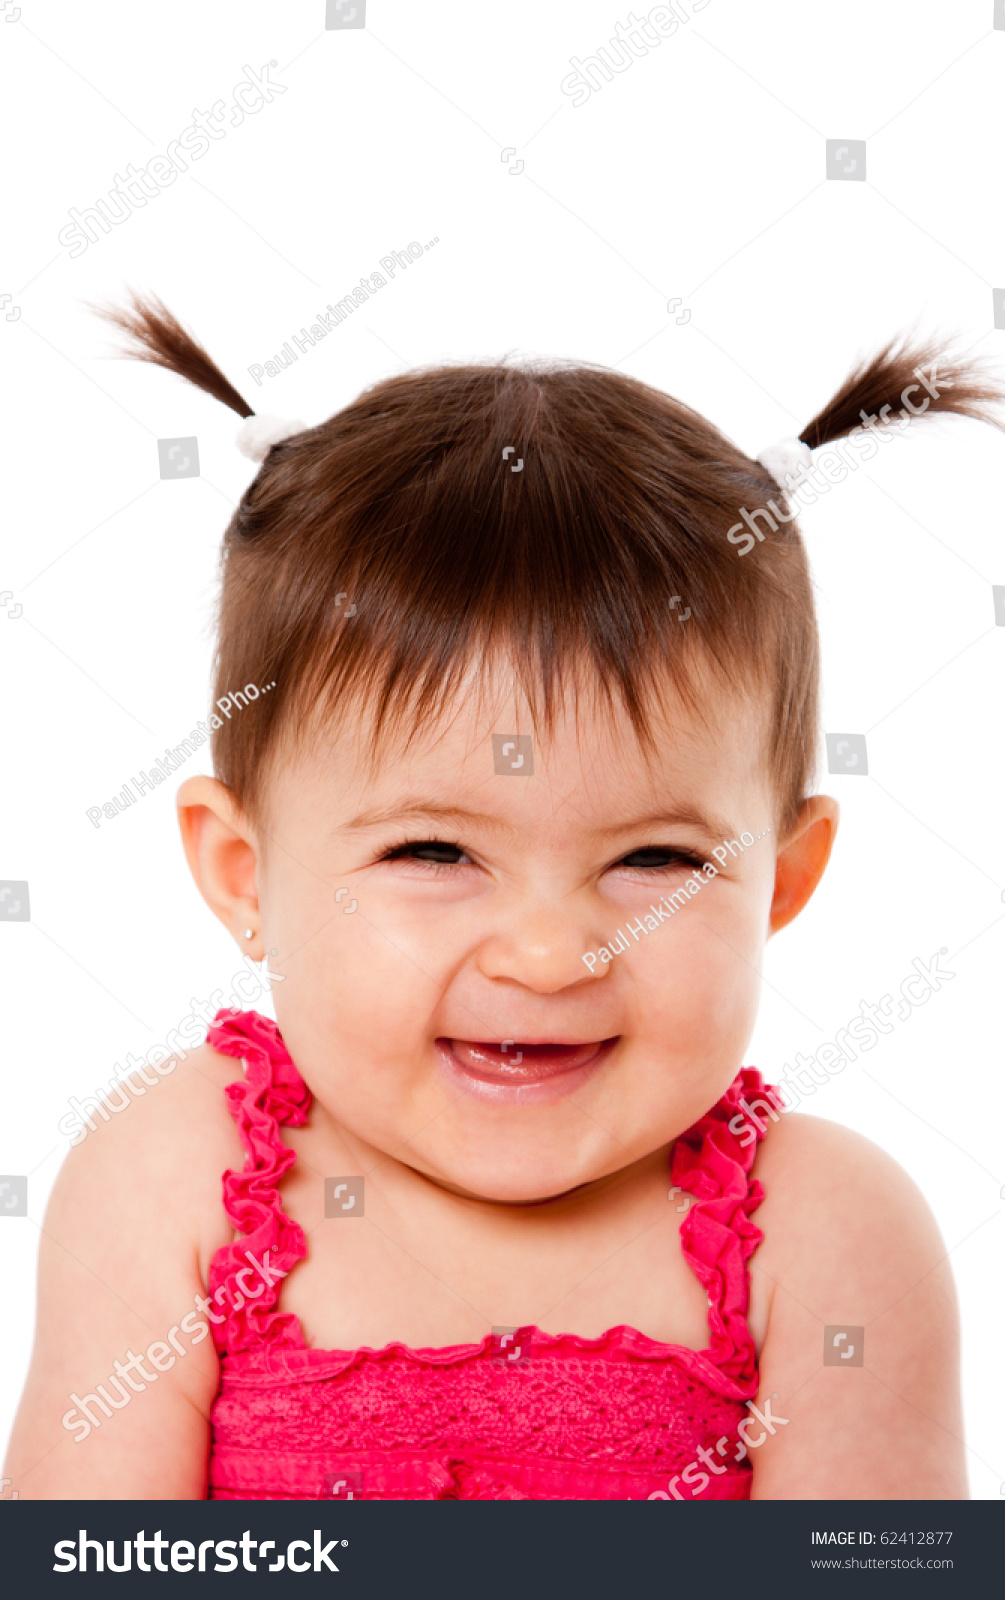 Face Cute Happy Smiling Laughing Baby Stock Photo 62412877 ... Cute Happy Baby Girl